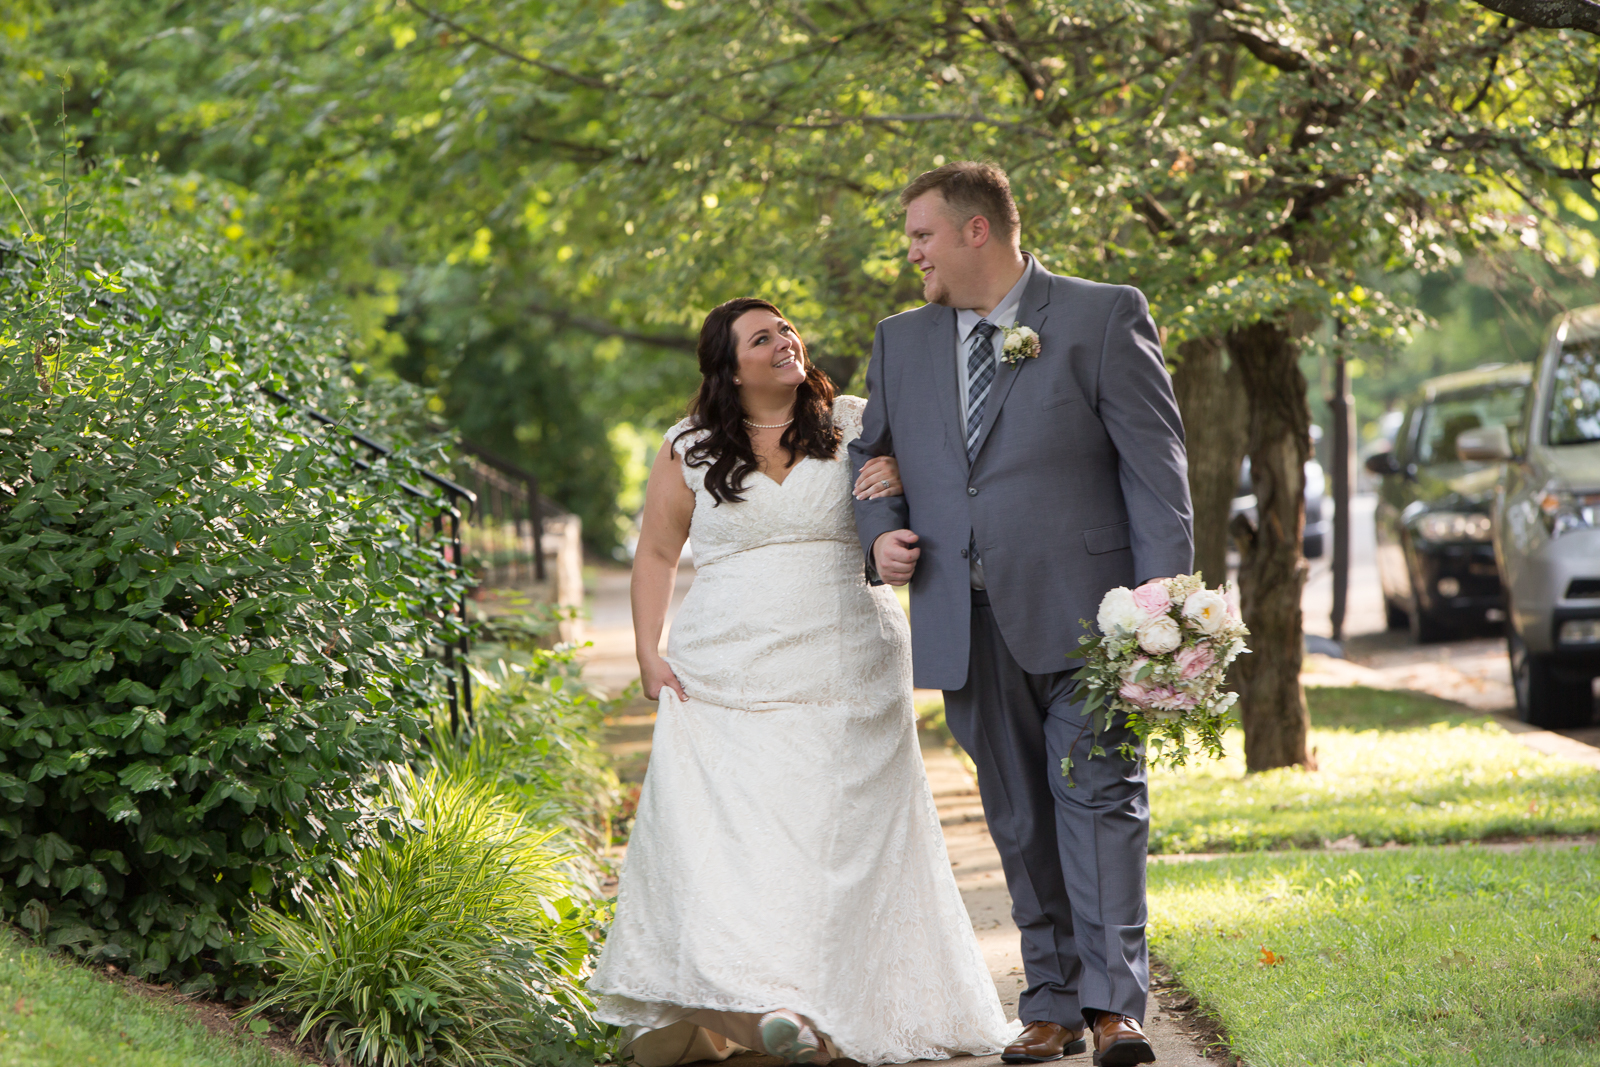 The light was so beautiful on their wedding day for this Nashville couple